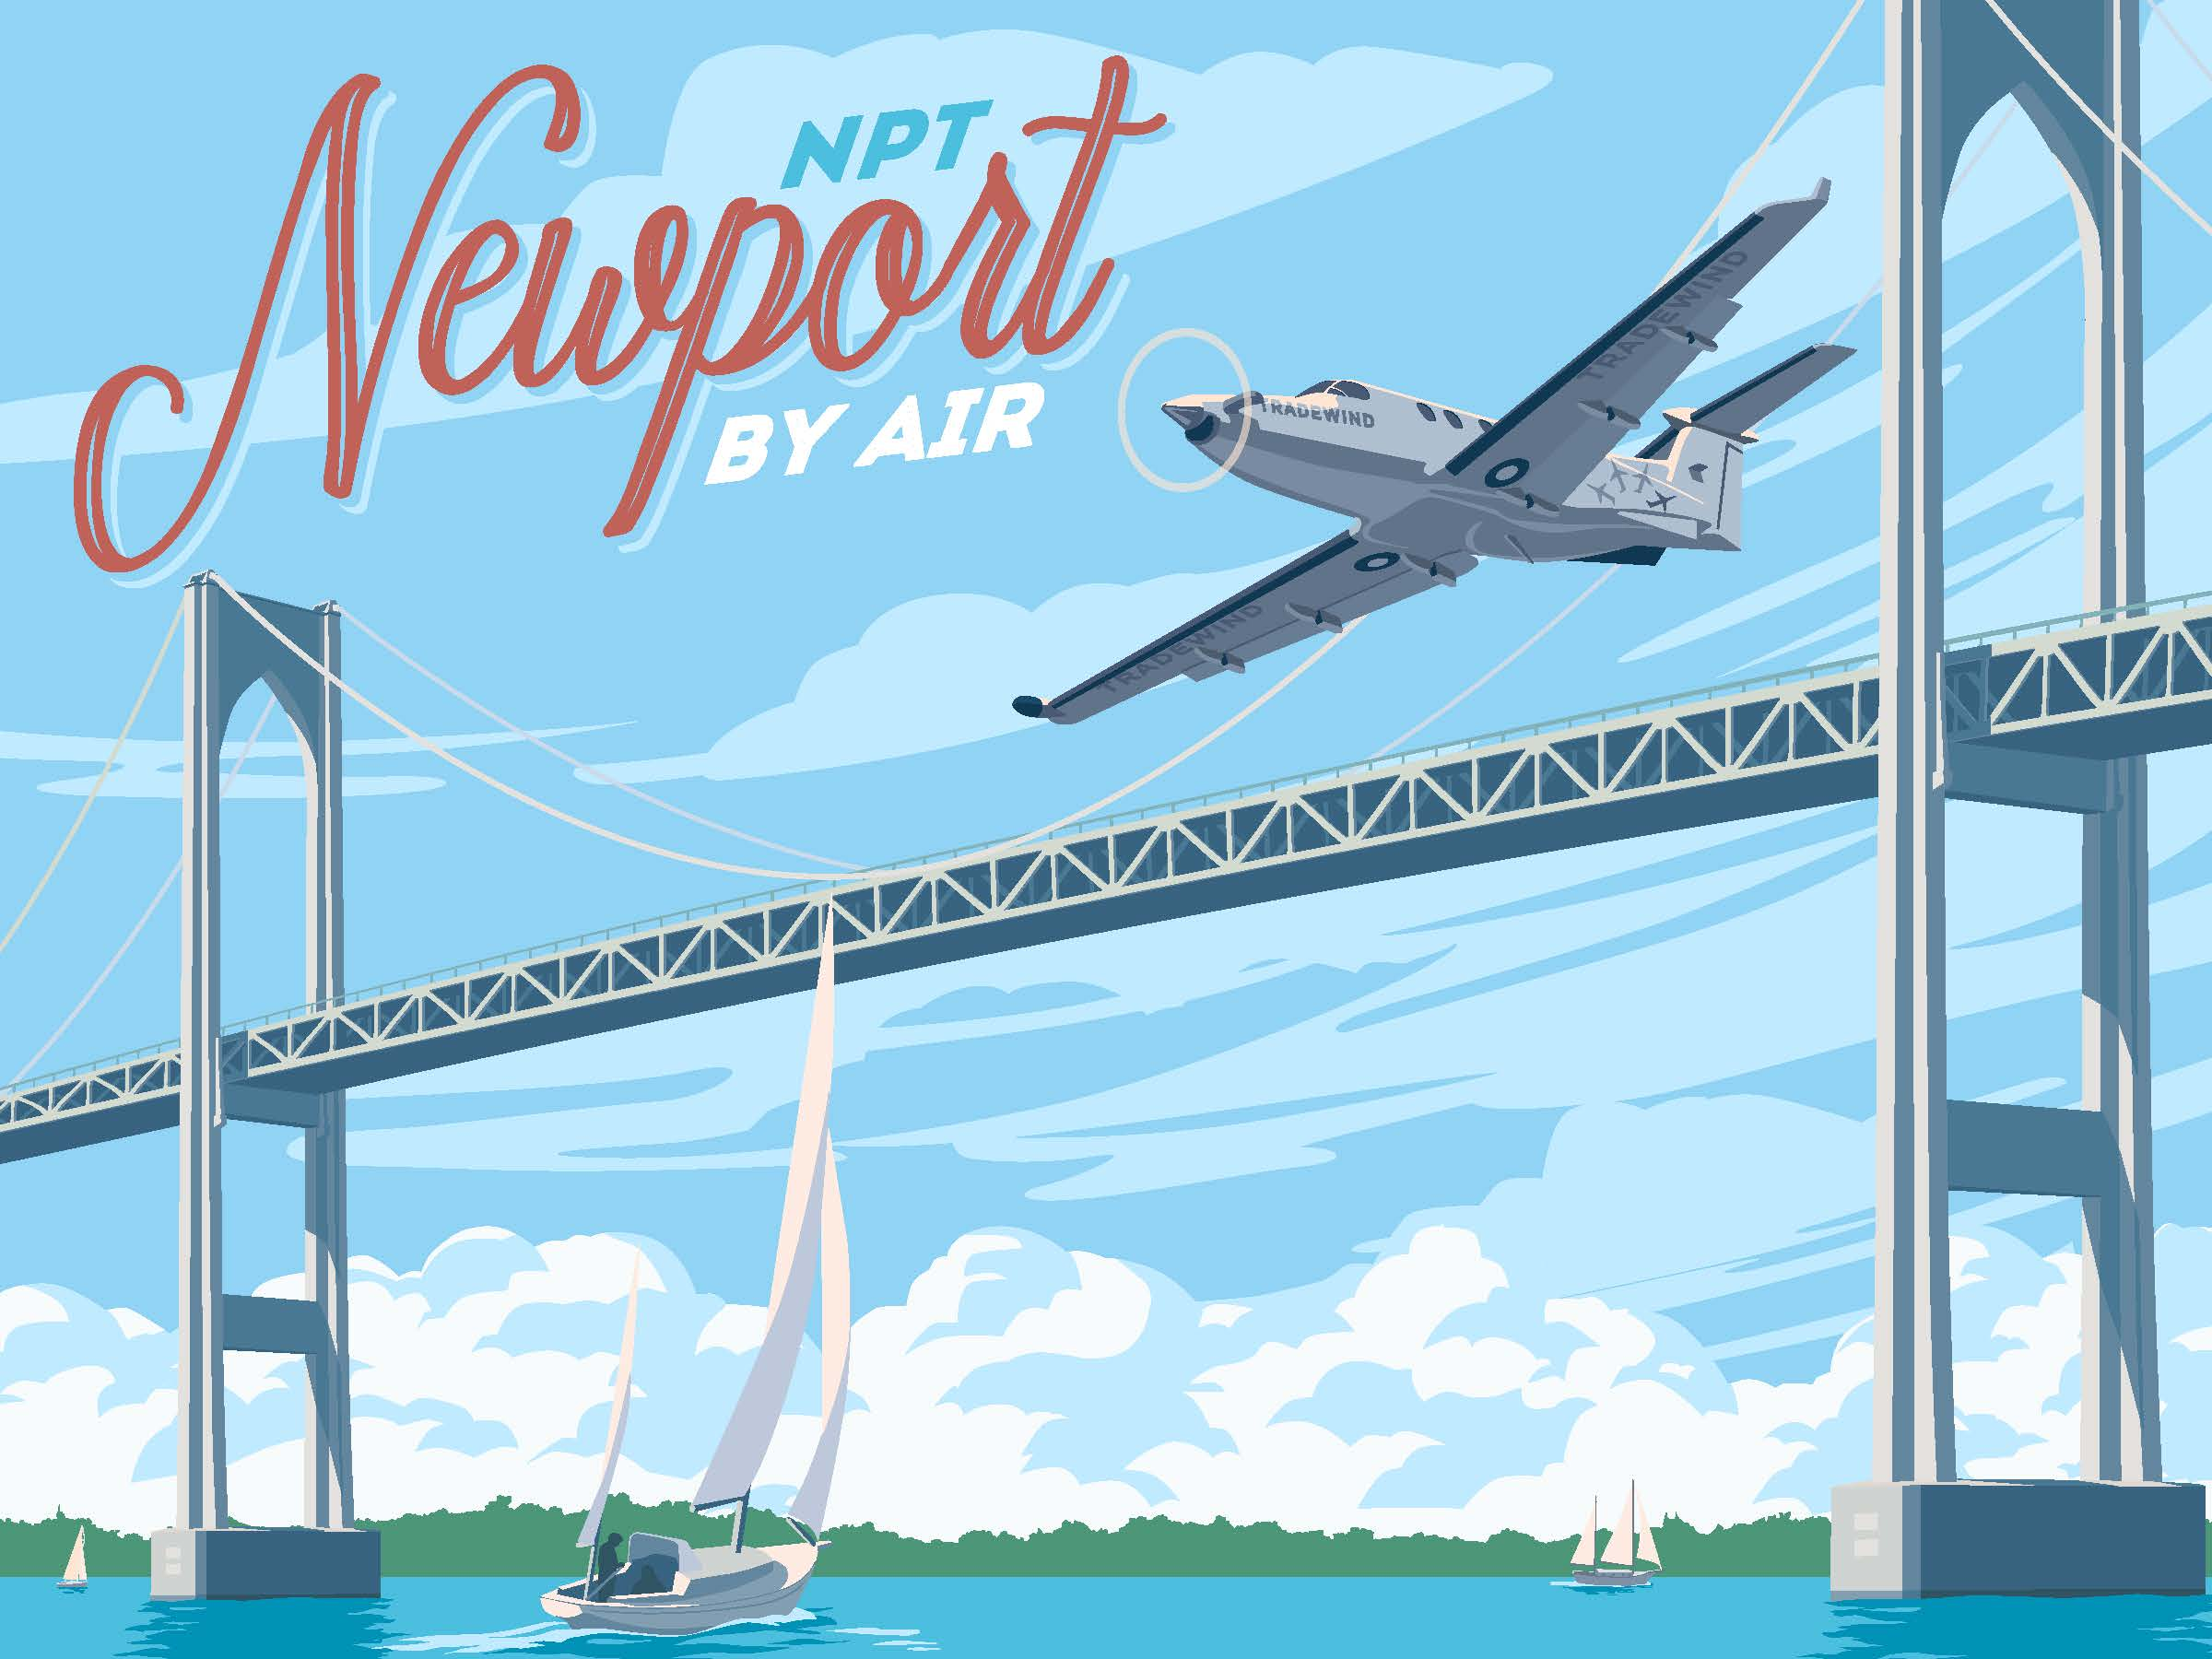 Image for Tradewind Aviation Launches Scheduled Flights to Newport, RI